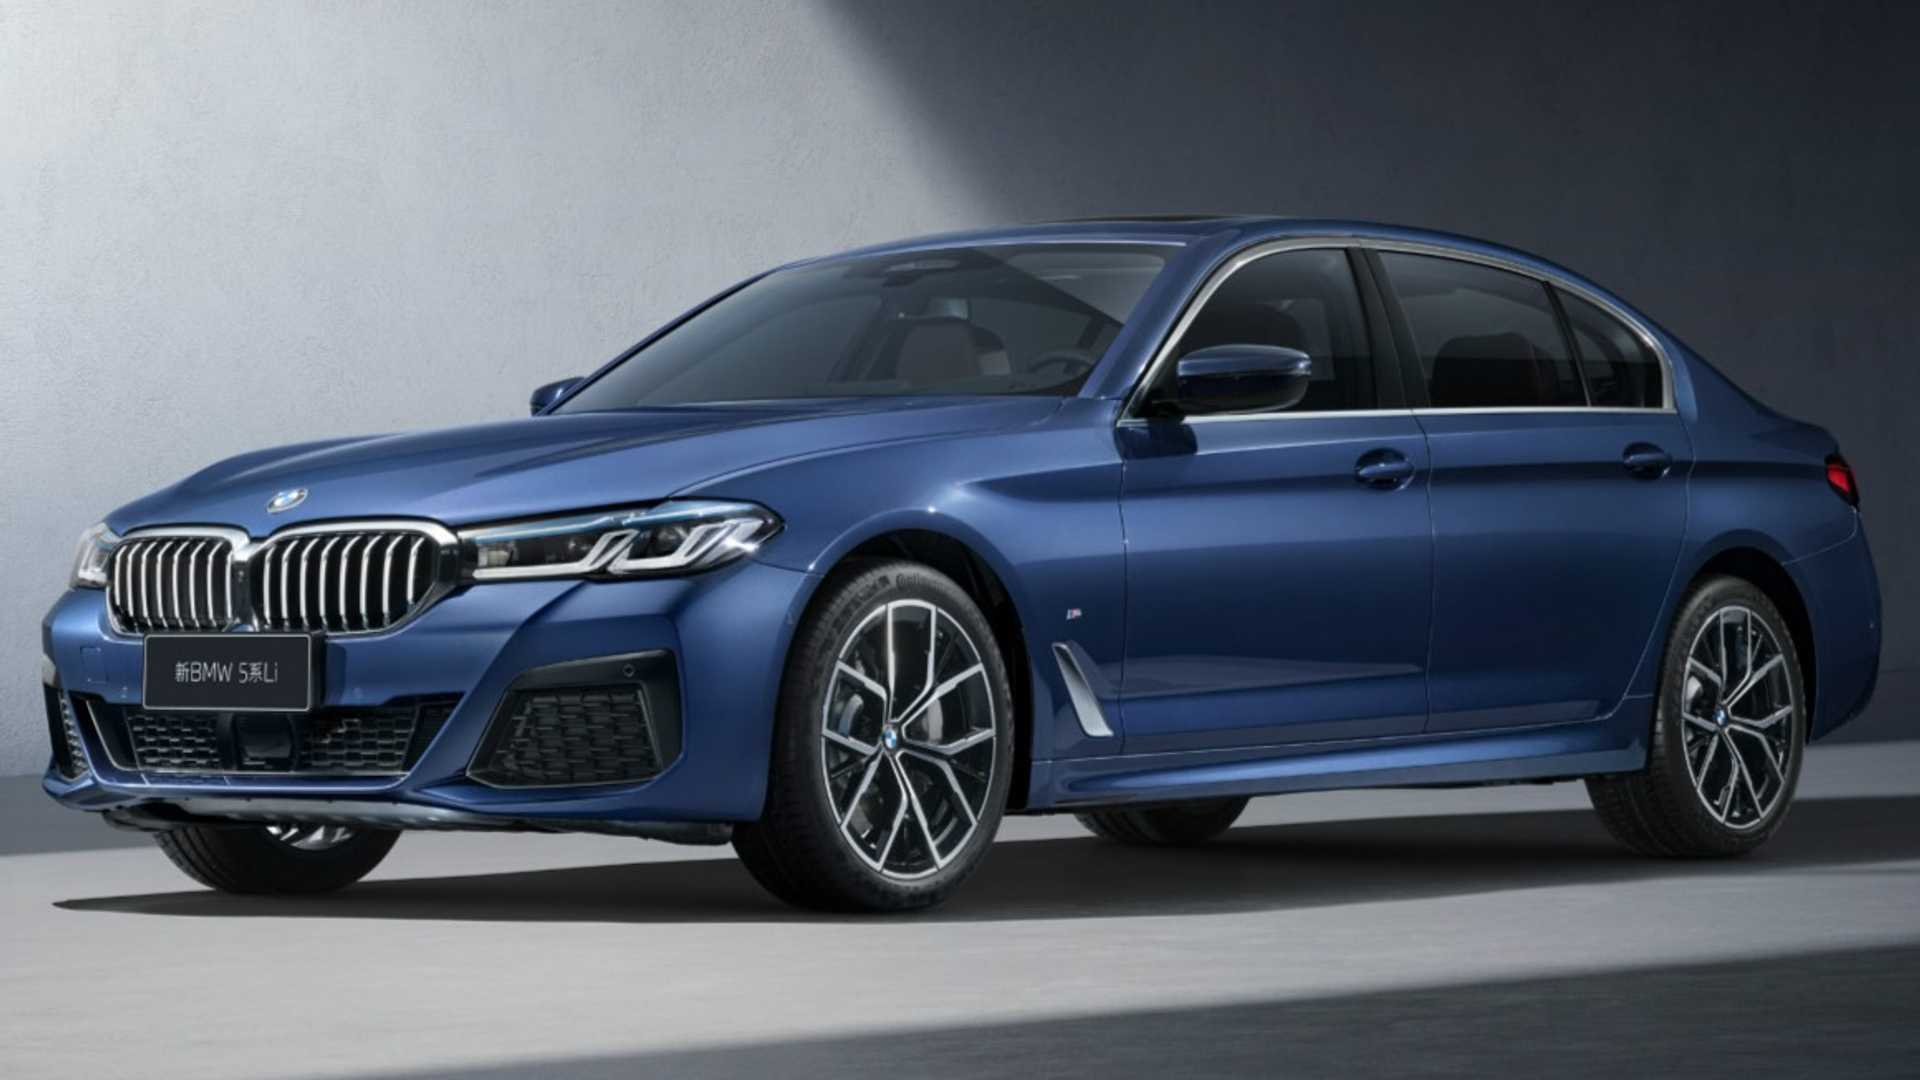 2021 BMW 5 Series Stretches Out In China With Long Wheelbase - Motor1.com